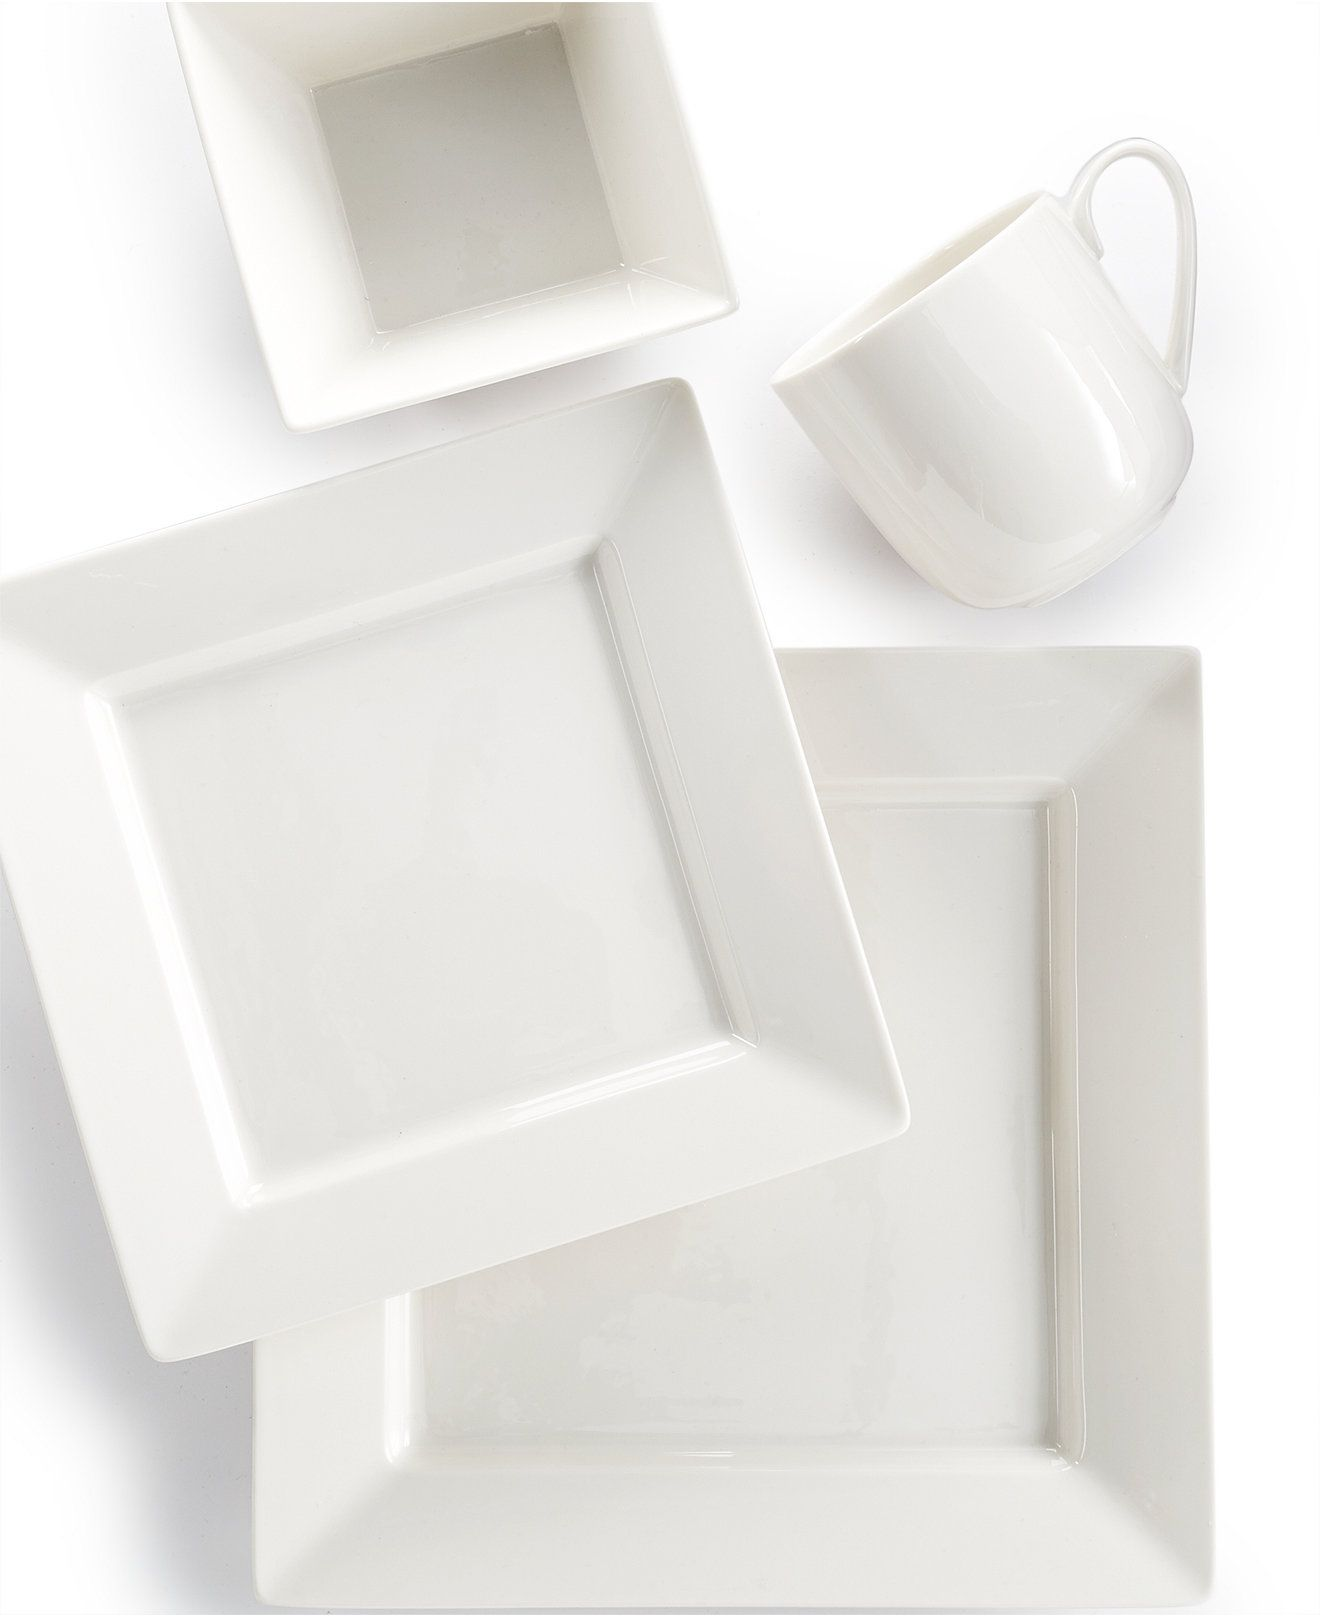 [WANT 2 MORE] Martha Stewart Collection Avenue Square Whiteware 4-Piece Place Setting - Casual Dinnerware - Dining u0026 Entertaining - Macyu0027s  sc 1 st  Pinterest & WANT 2 MORE] Martha Stewart Collection Avenue Square Whiteware 4 ...